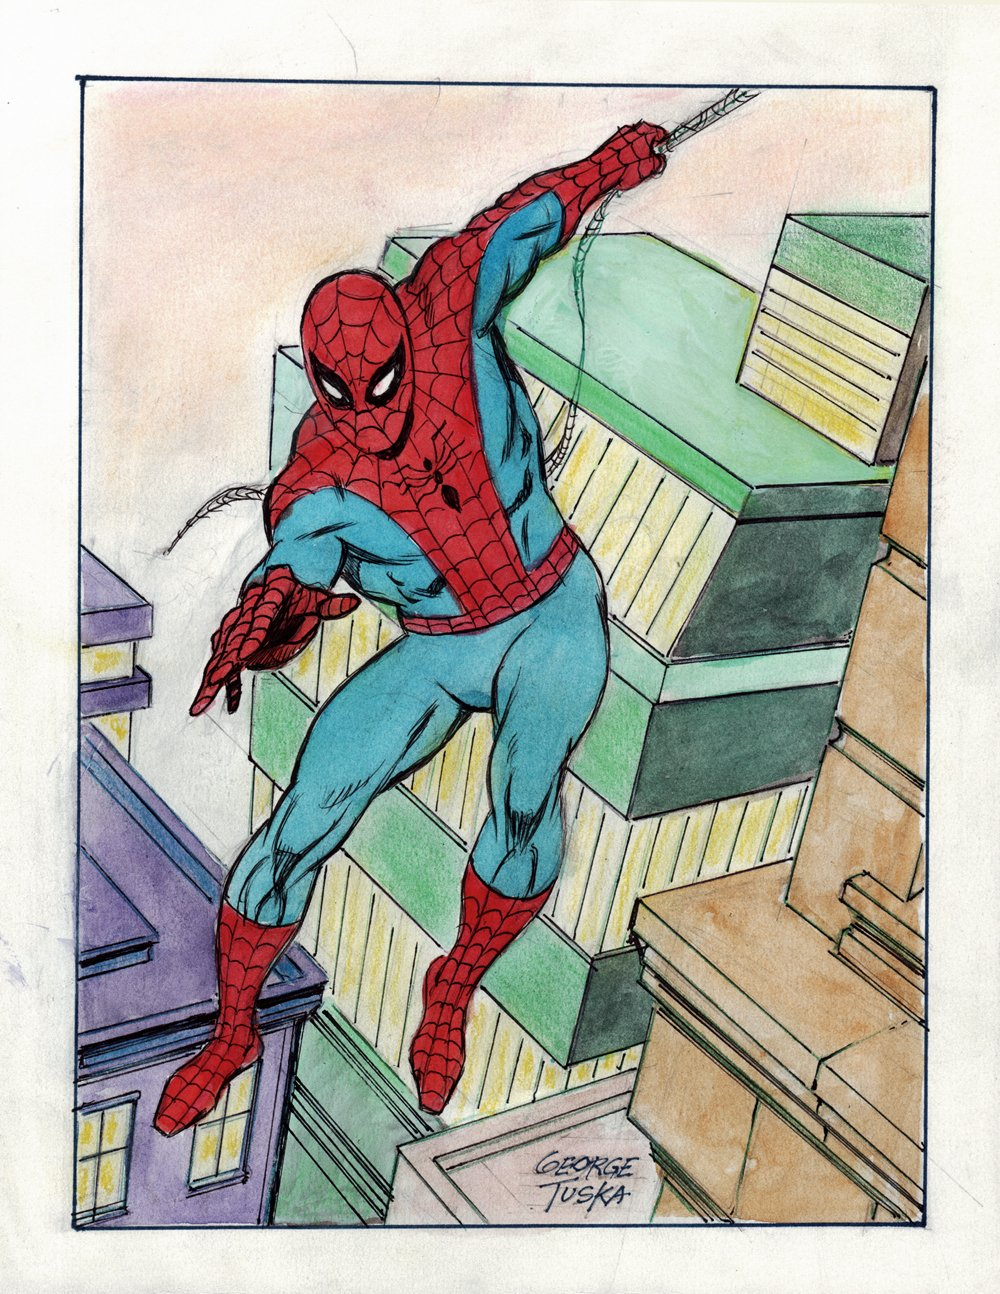 Spider-Man Penciled, Inked, & Hand Colored Illustration